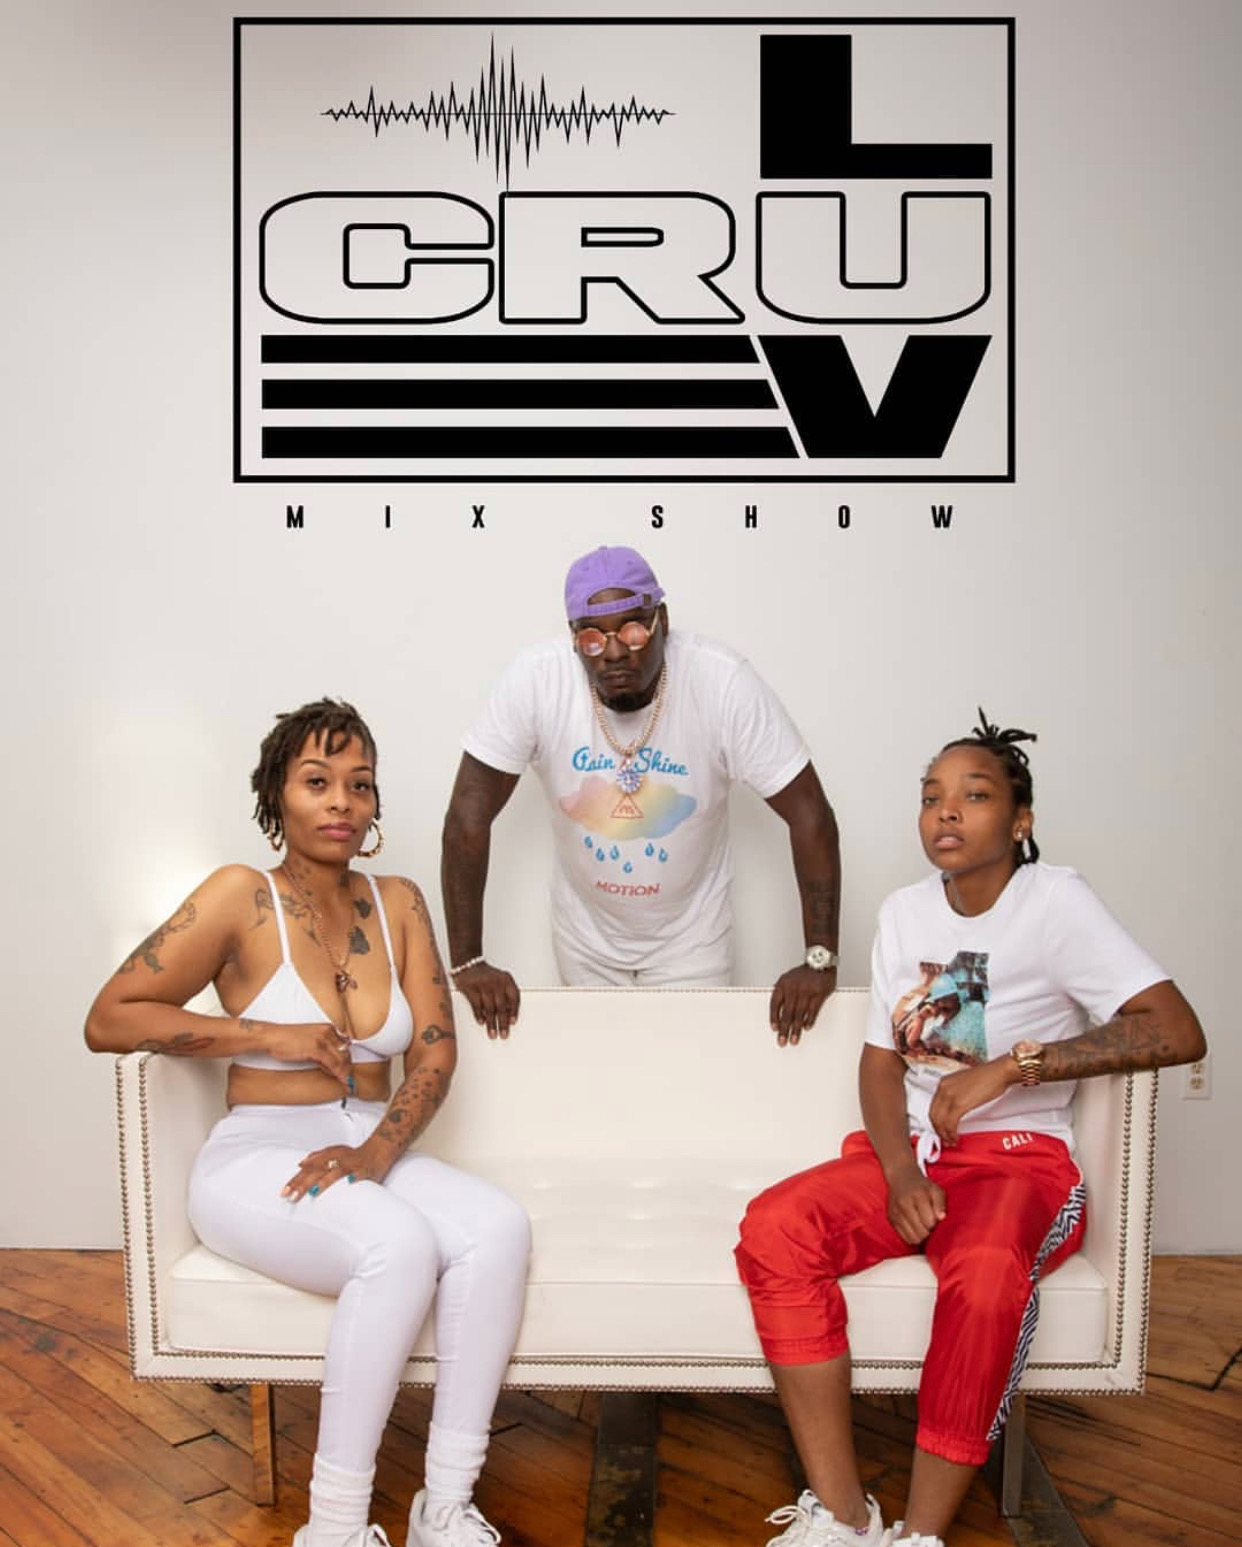 CRU LUV MIX SHOW